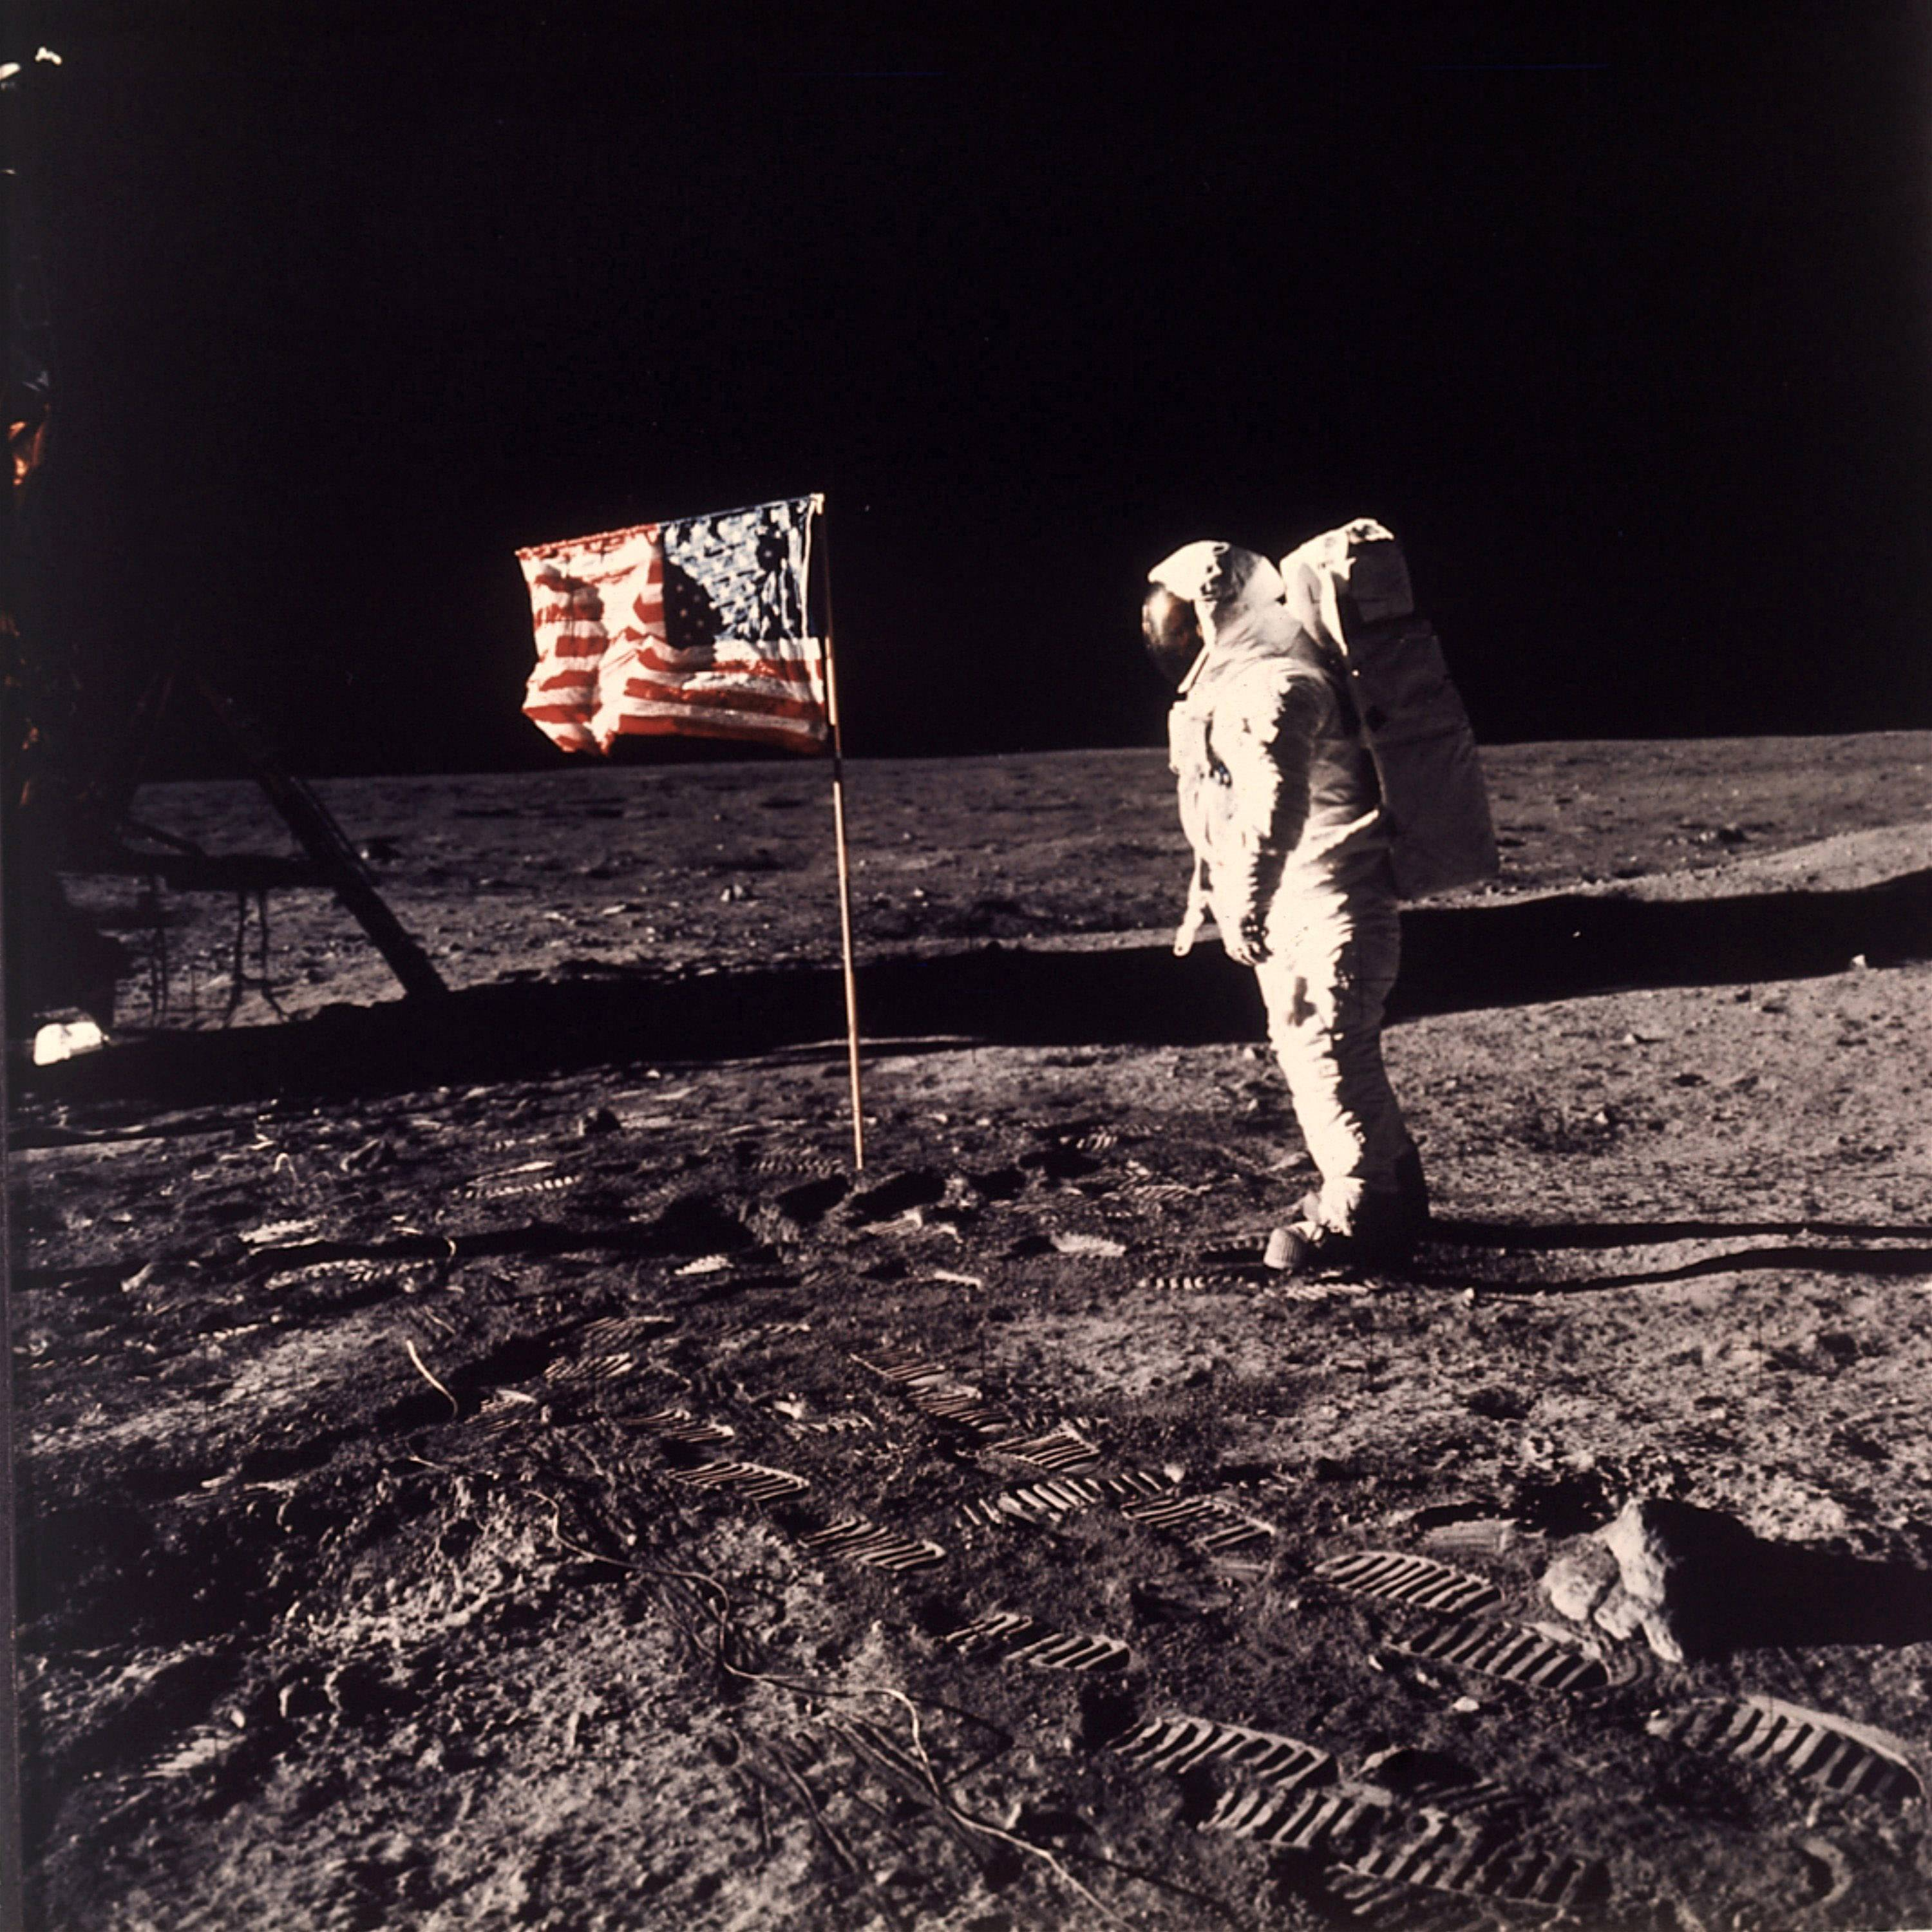 "ASSOCIATED PRESS/NASAAstronaut Edwin E. ""Buzz"" Aldrin Jr. stands beside a U.S. flag deployed on the moon during the Apollo 11 mission on July 20, 1969. Aldrin and fellow astronaut Neil Armstrong were the first men to walk on the lunar surface."